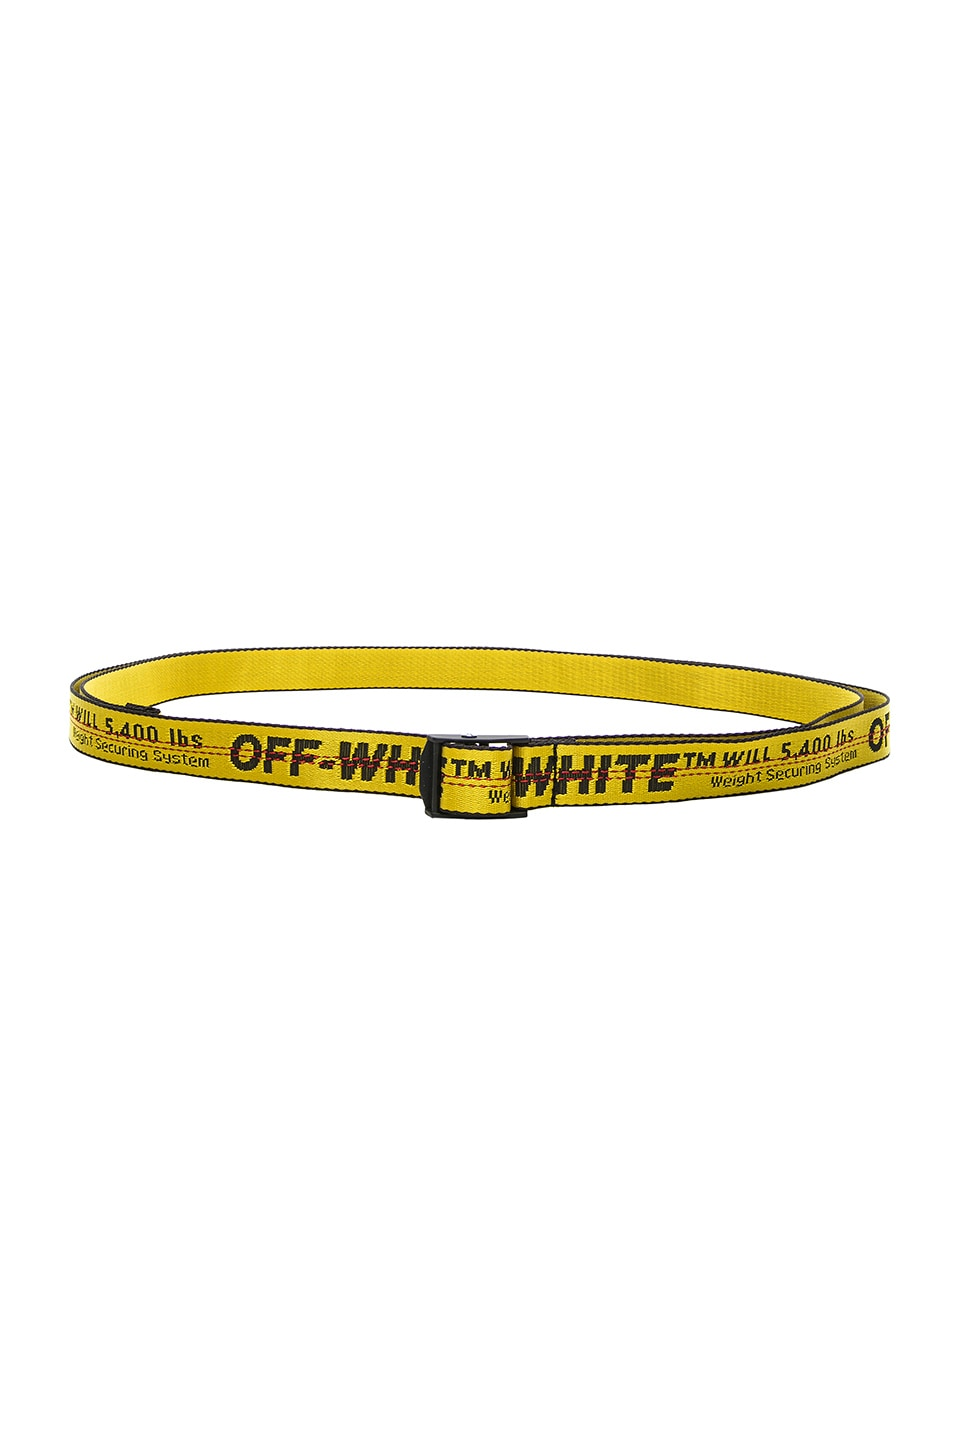 OFF-WHITE Mini Industrial Belt in Yellow & Black